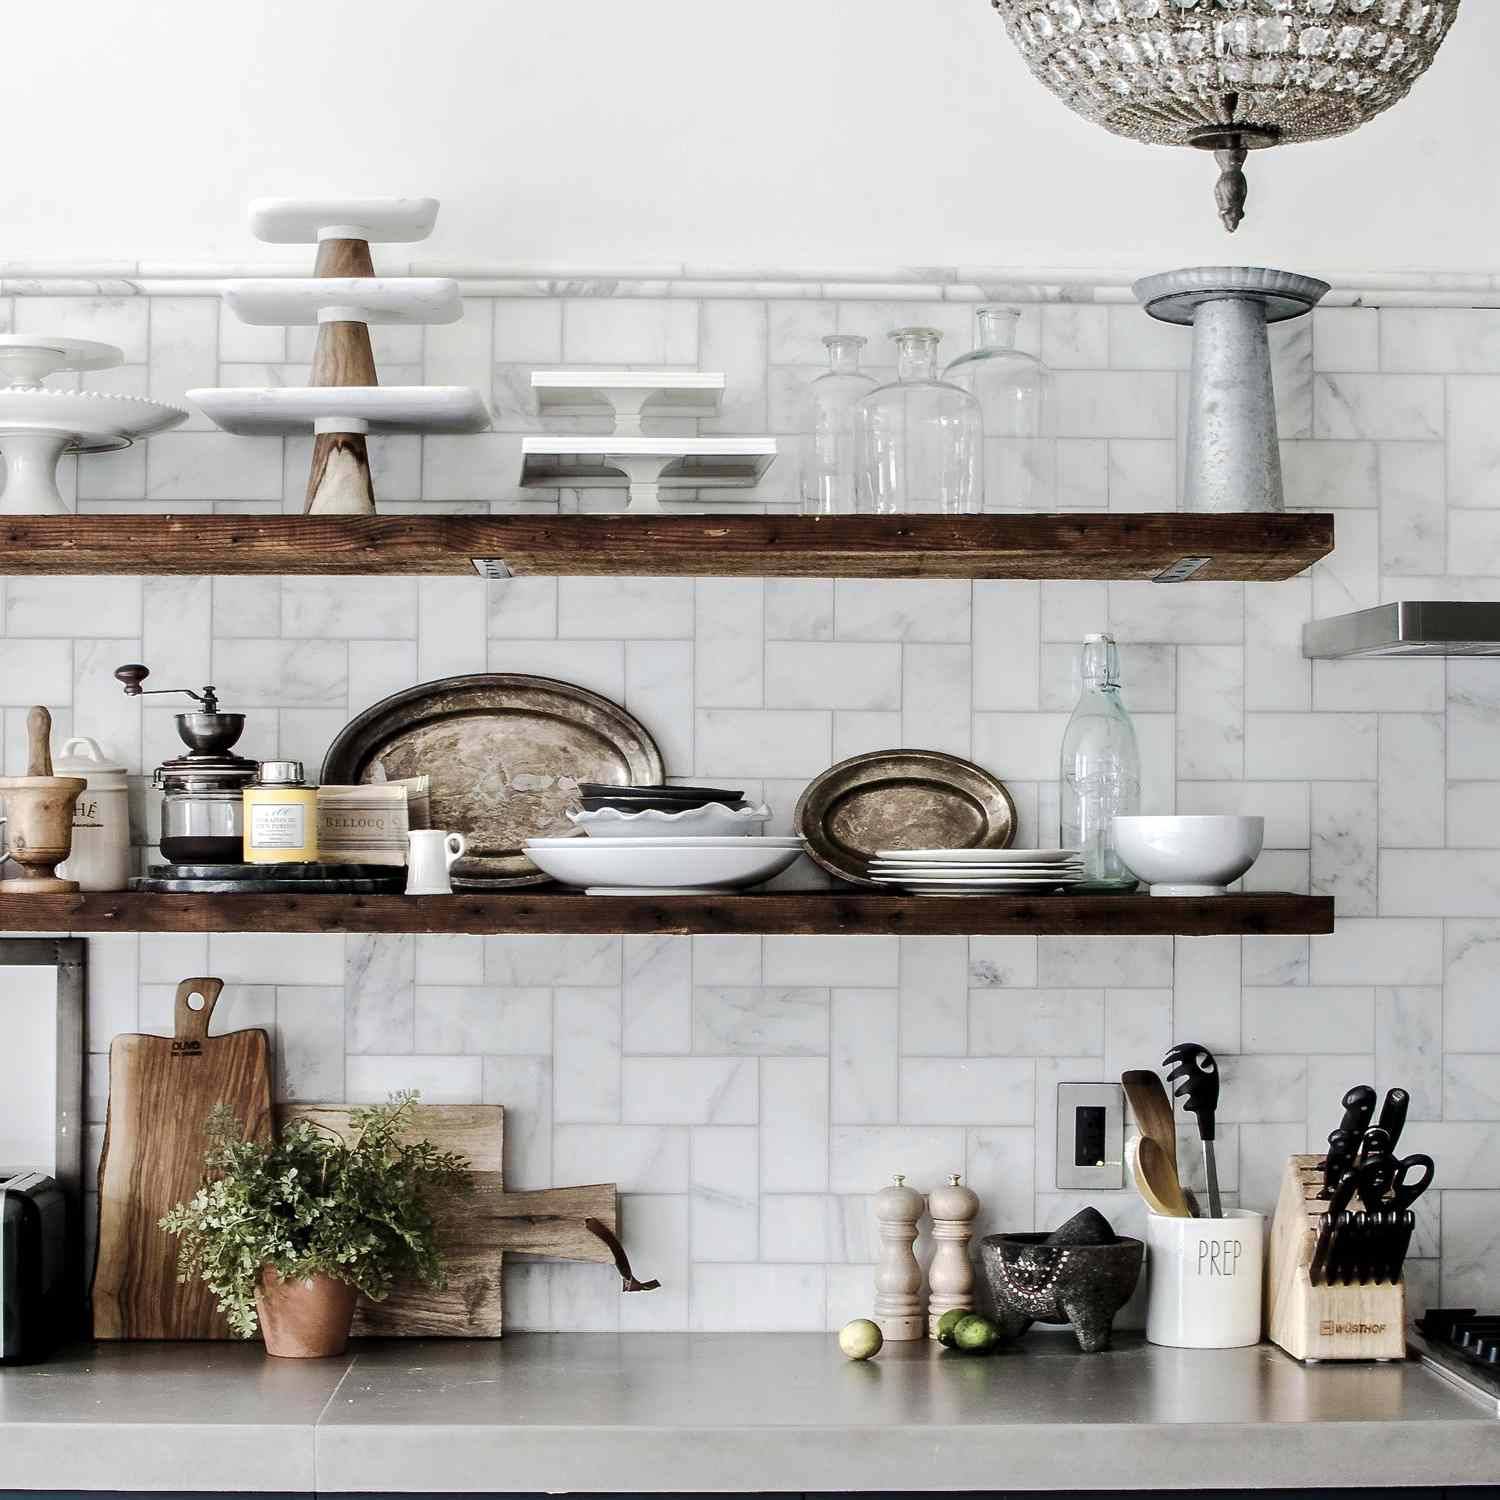 A kitchen lined with antique details